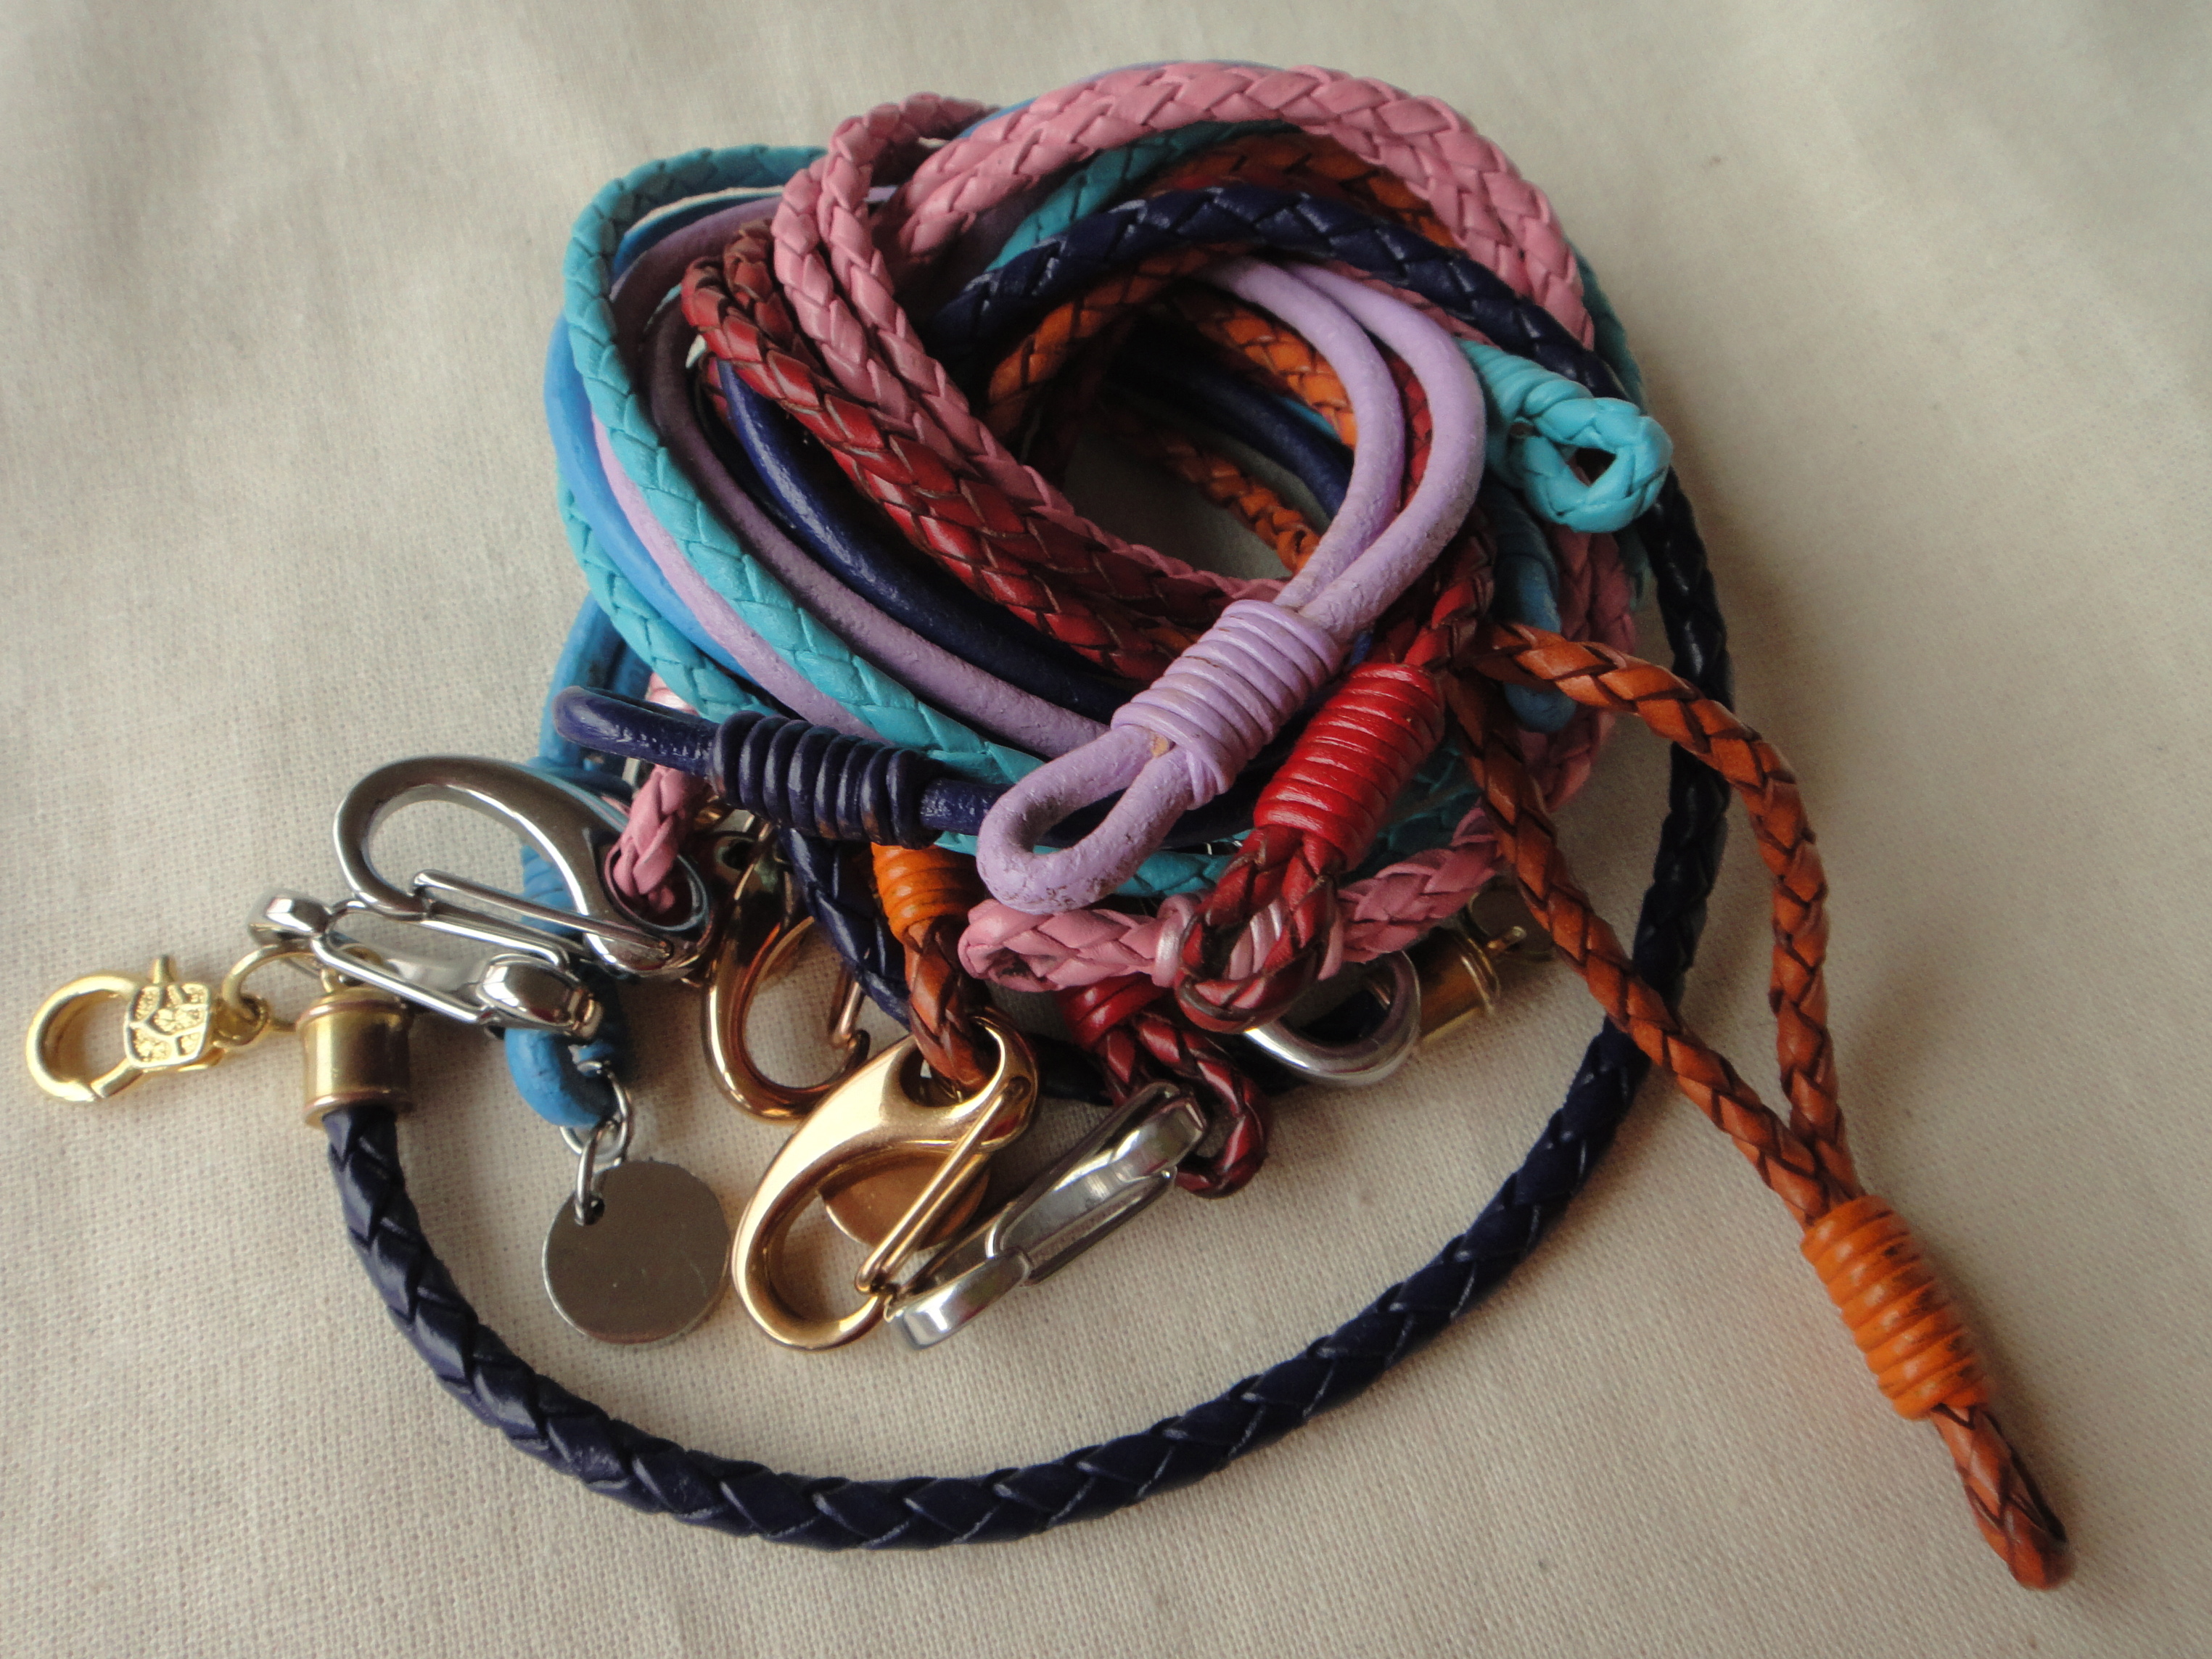 bracelets in all colors